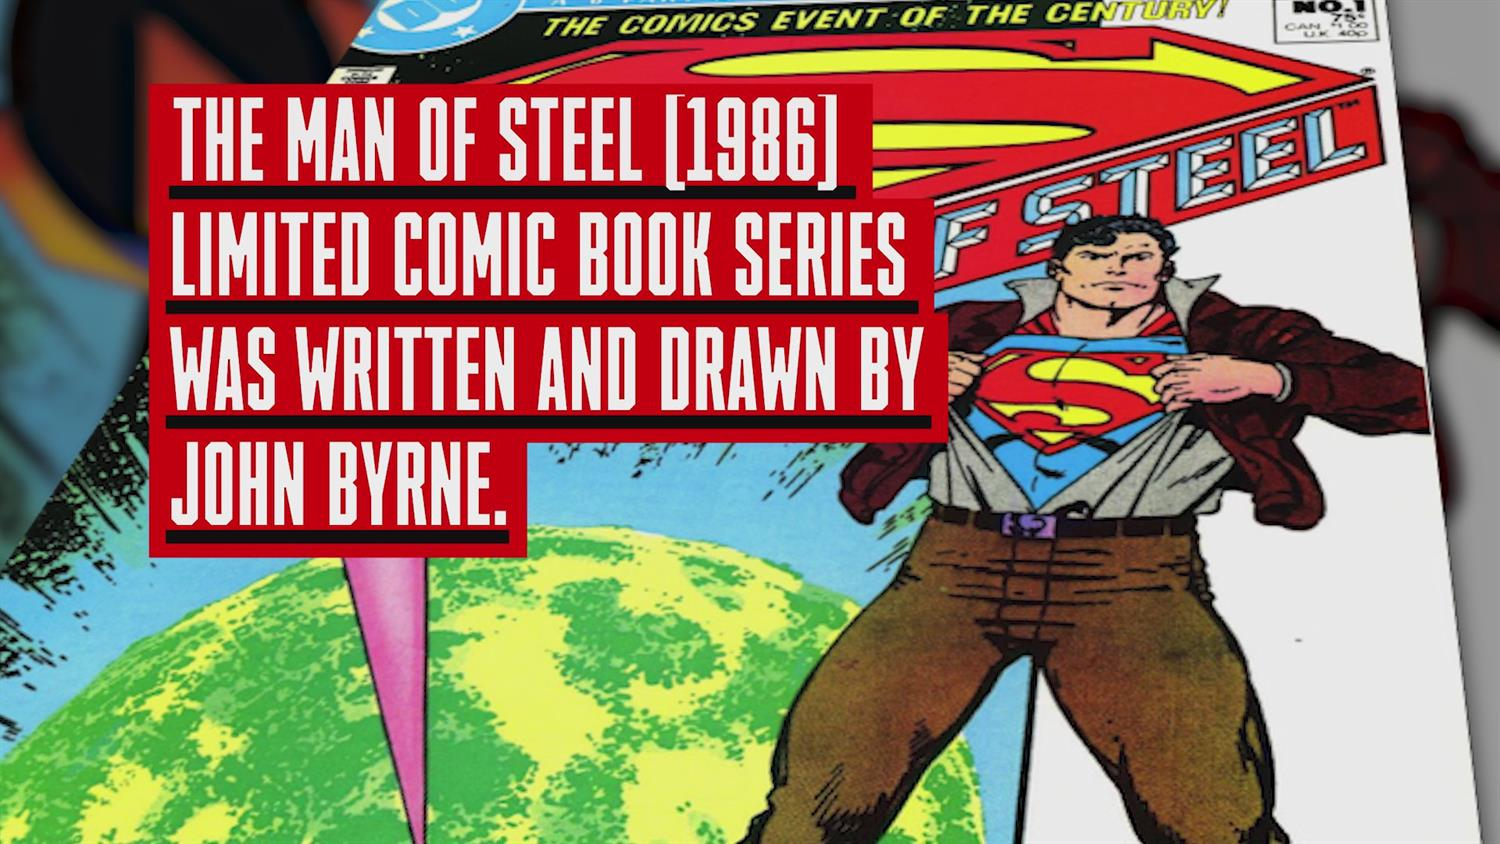 John Byrne on Reinventing Superman, Superman Shaving & His Version of Lois Lane (Behind the Panel)